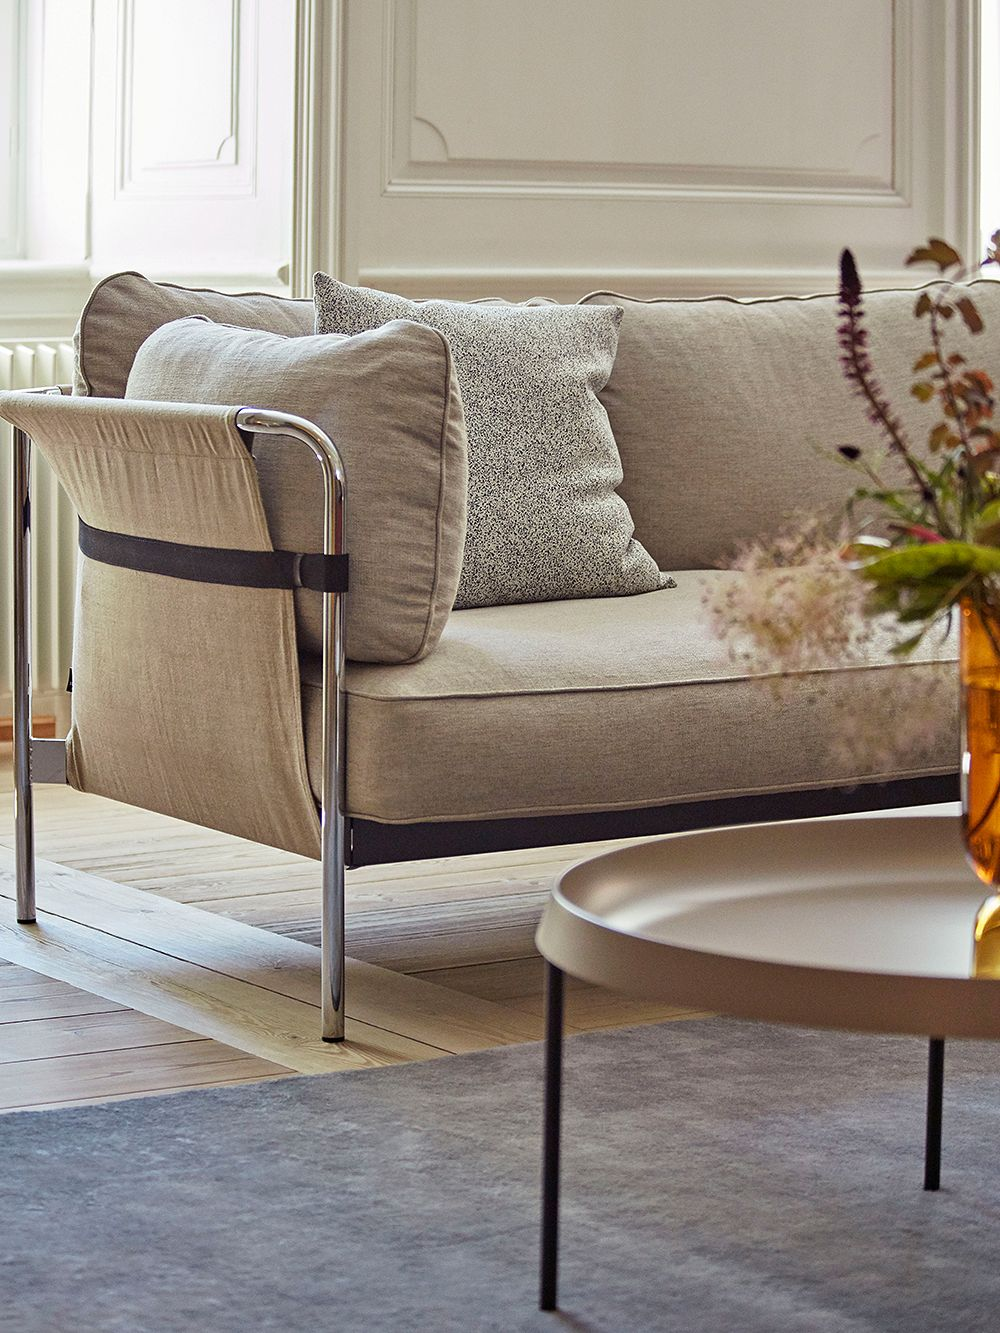 Hay's Can sofa as a part of the living room decor.